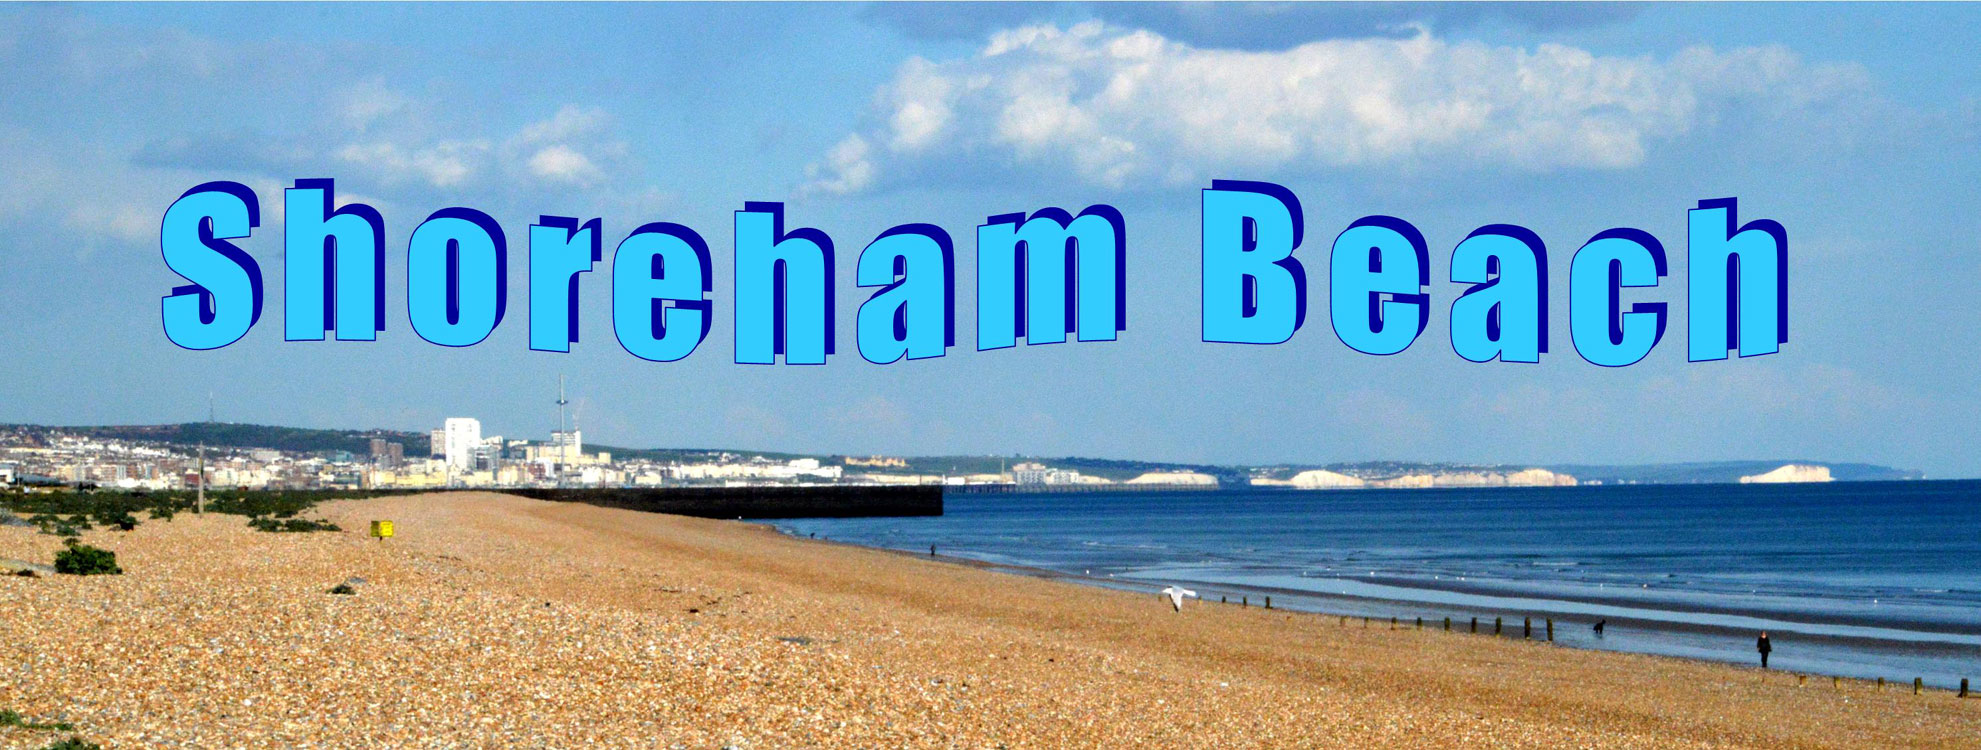 Click on this picture to transfer to another Shoreham Beach page